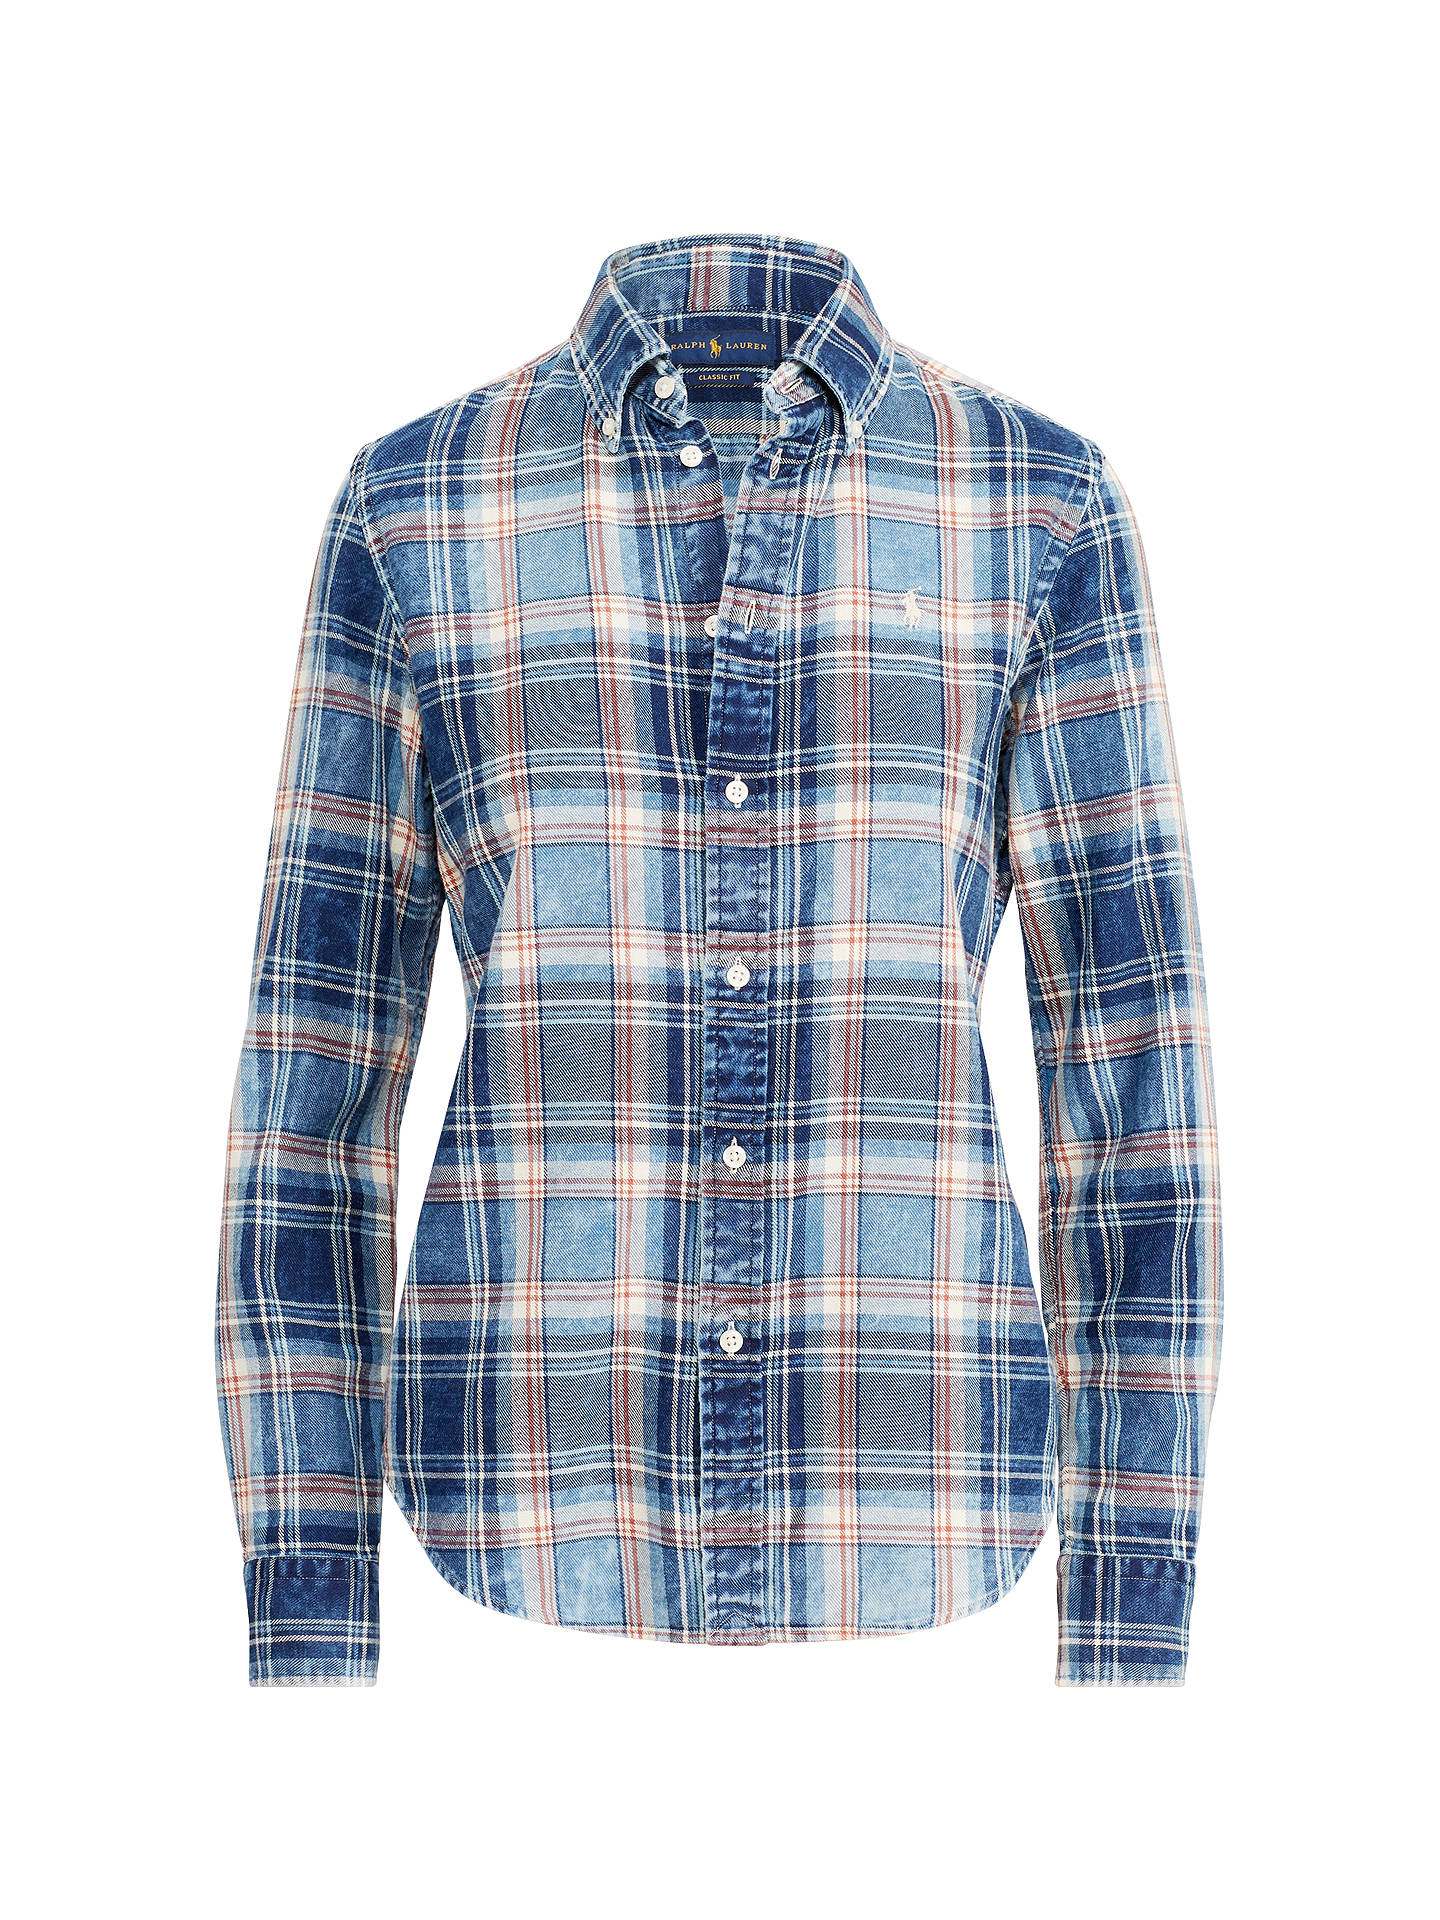 Buy Polo Ralph Lauren Georgia Check Shirt, Blue, XS Online at johnlewis.com